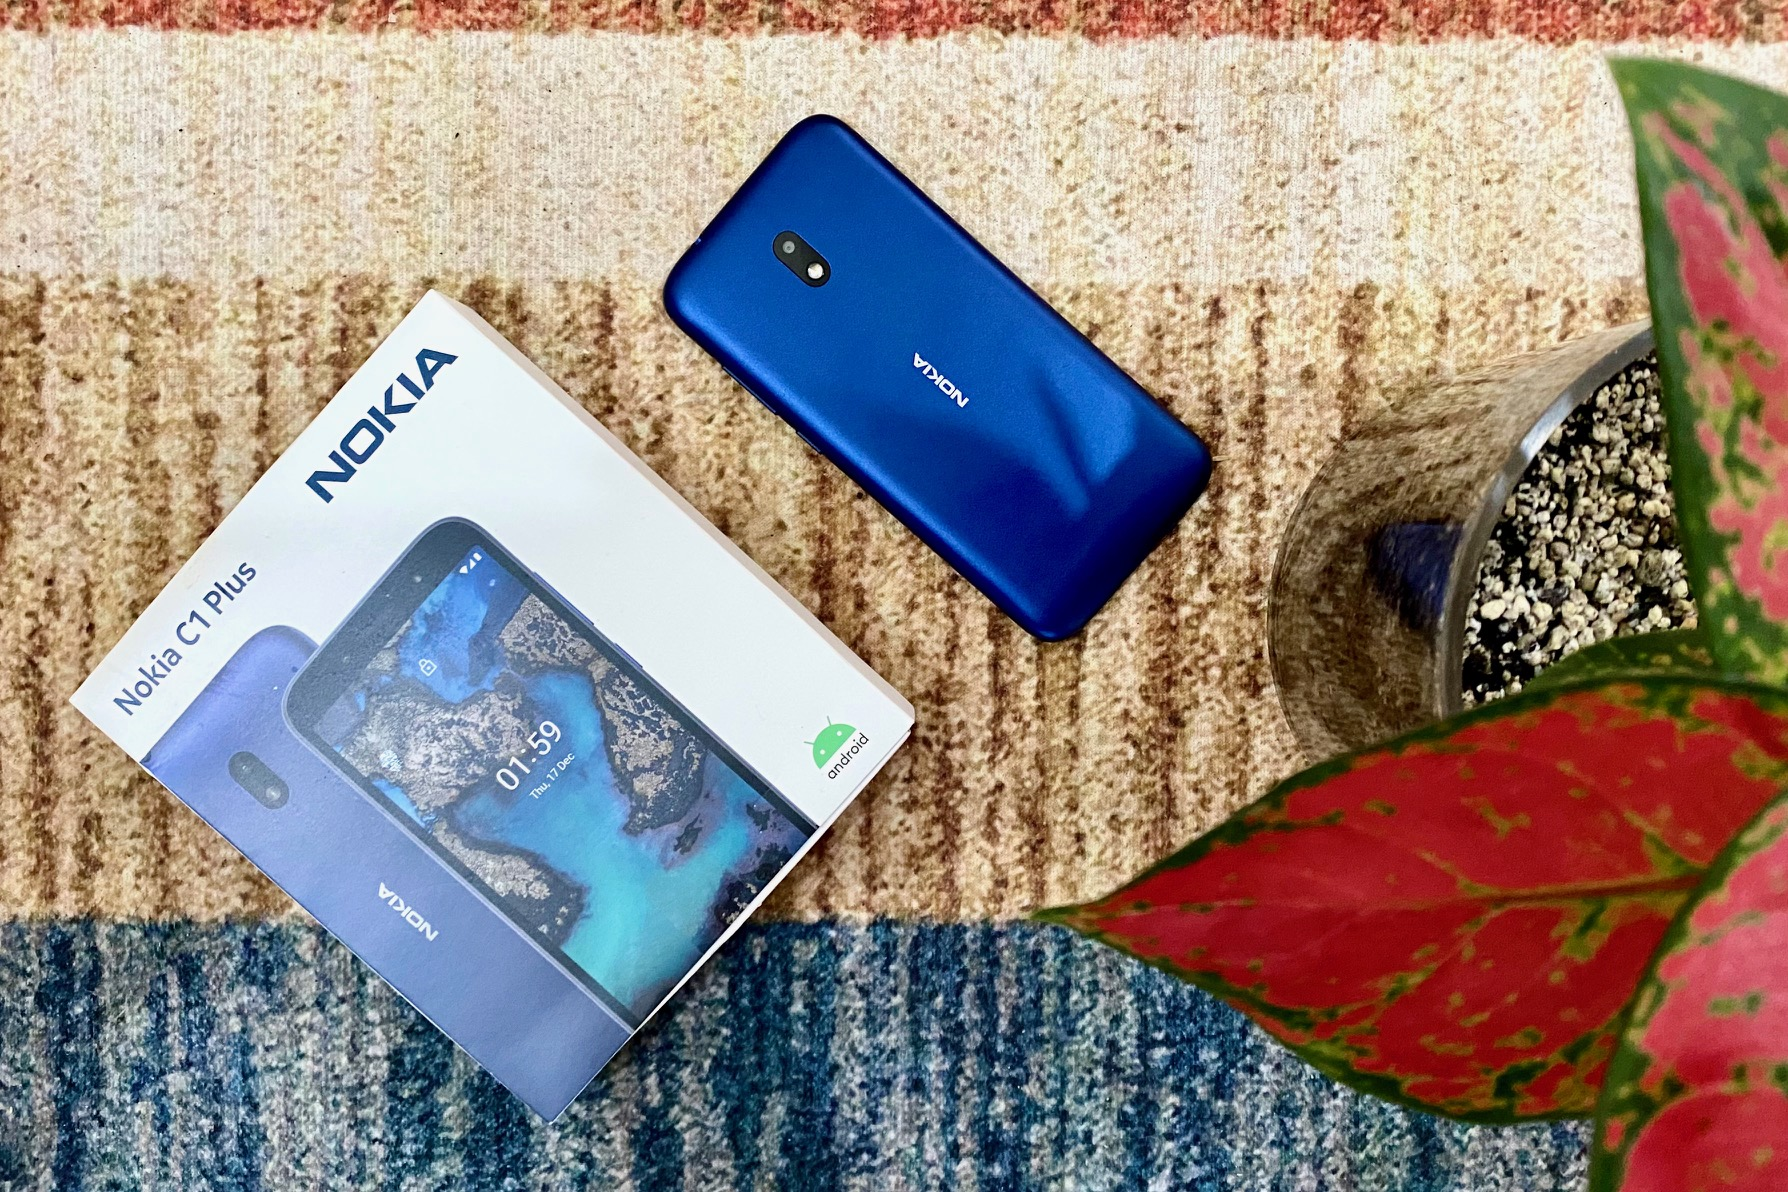 Nokia C1 Plus Review: Android Go under Php 4K